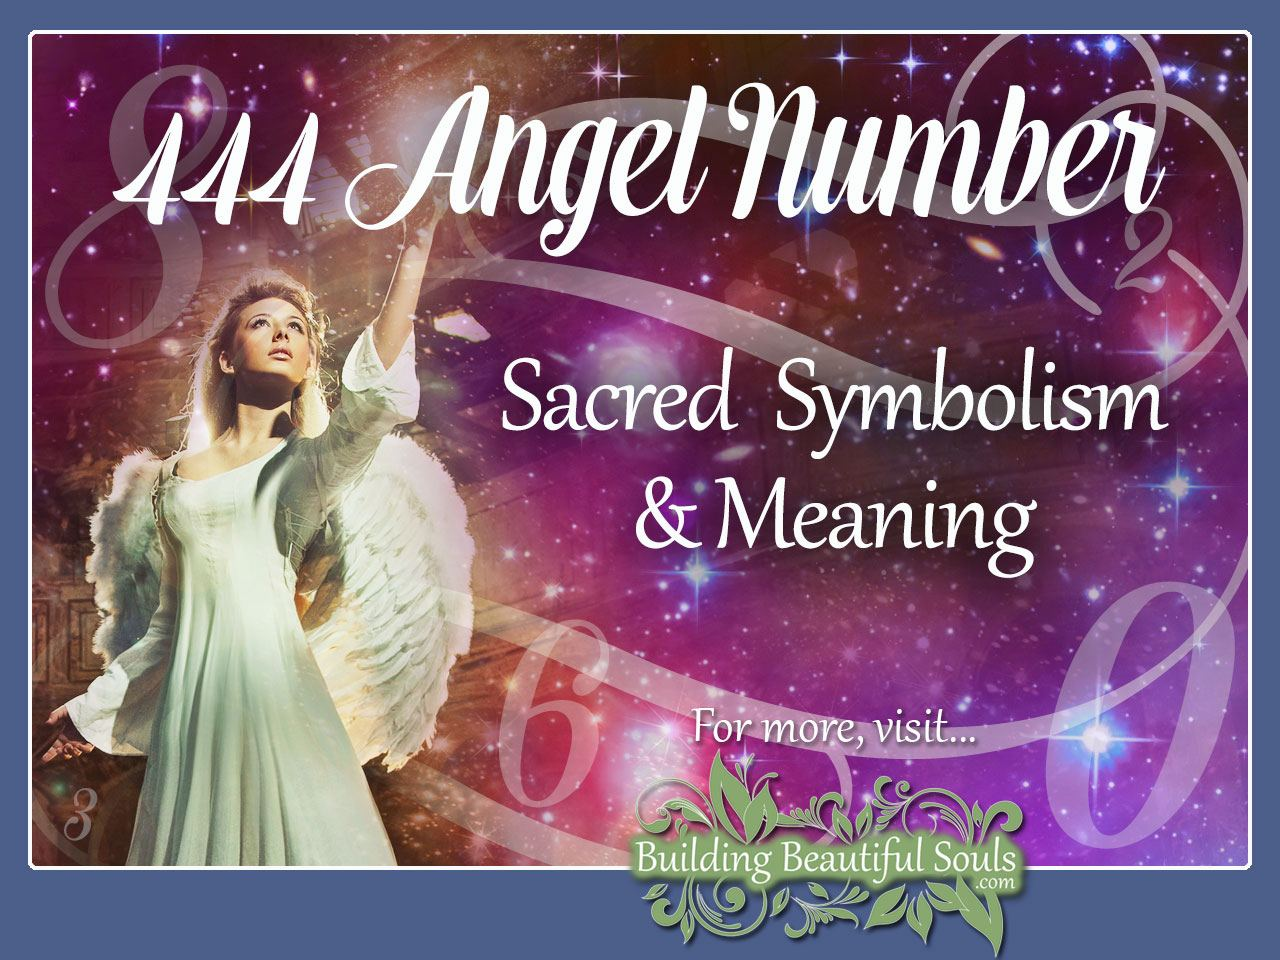 444 Angel Number | What Does 444 Mean in Spiritual, Love, Numerology